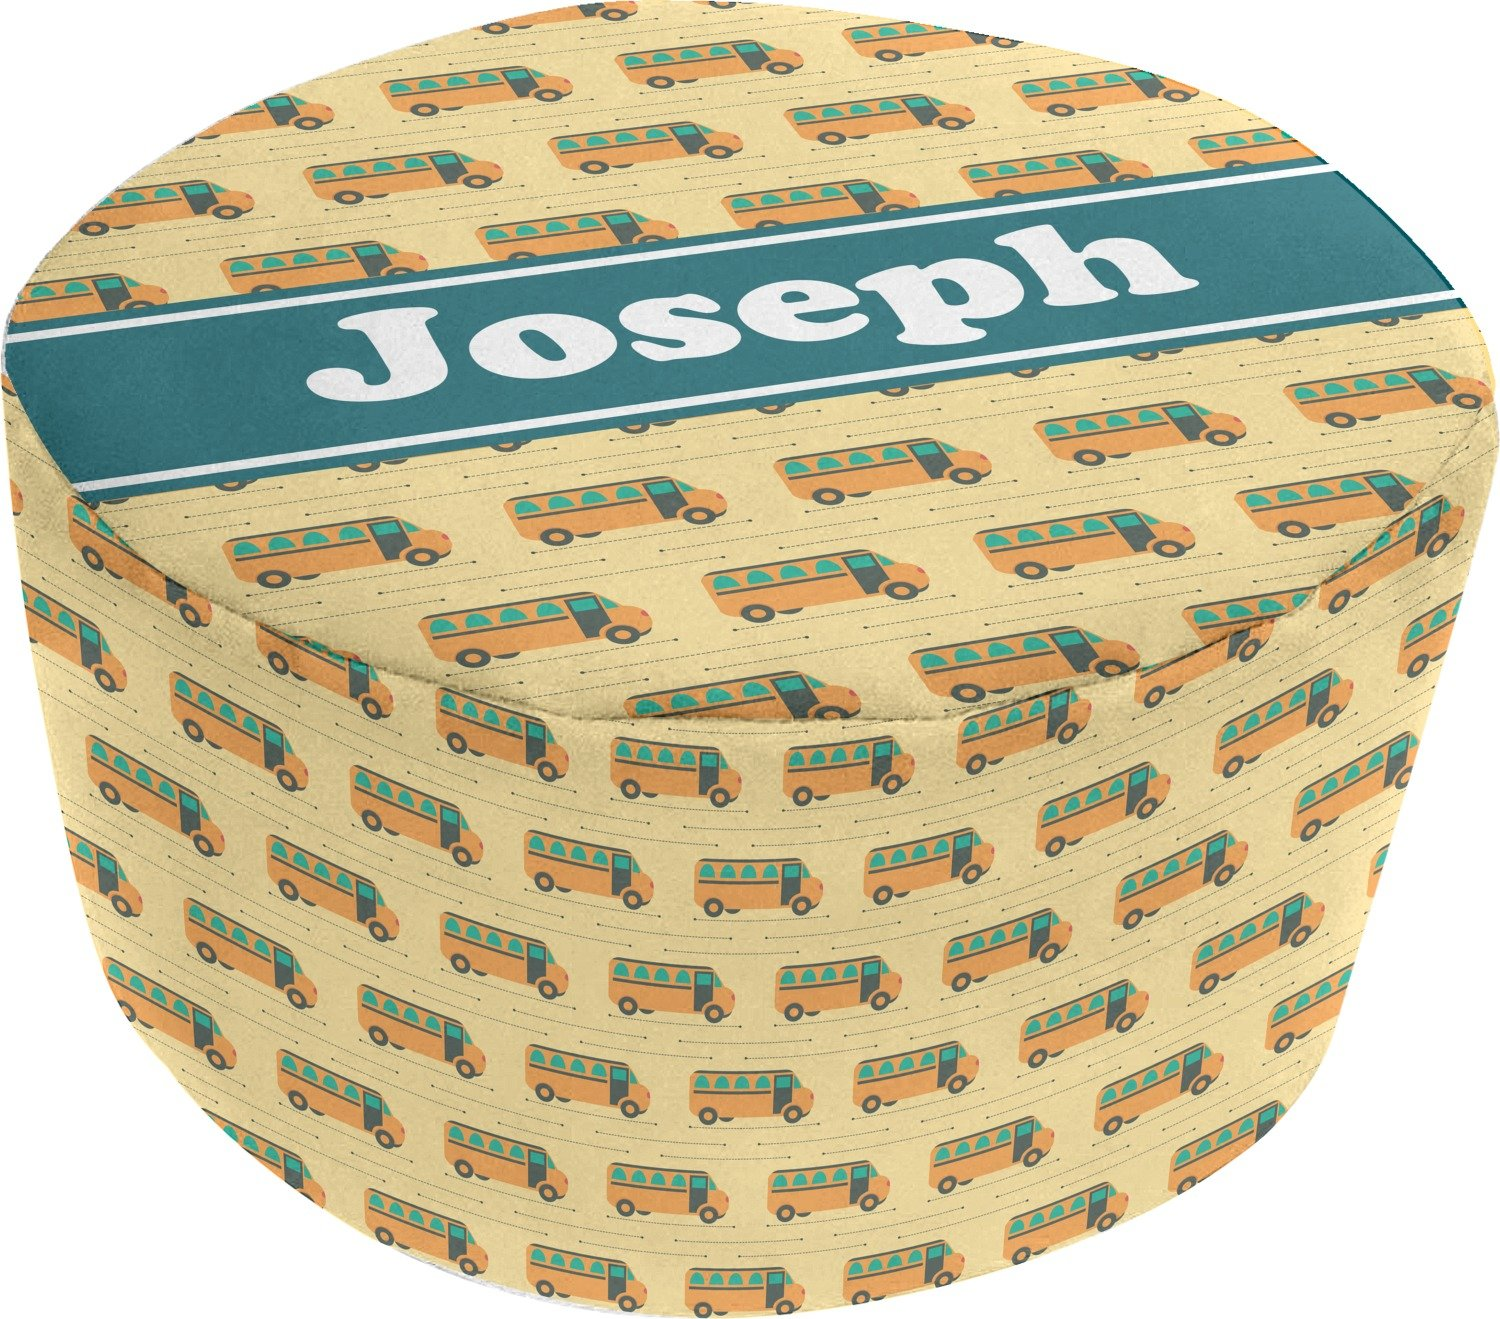 School Bus Round Pouf Ottoman (Personalized)